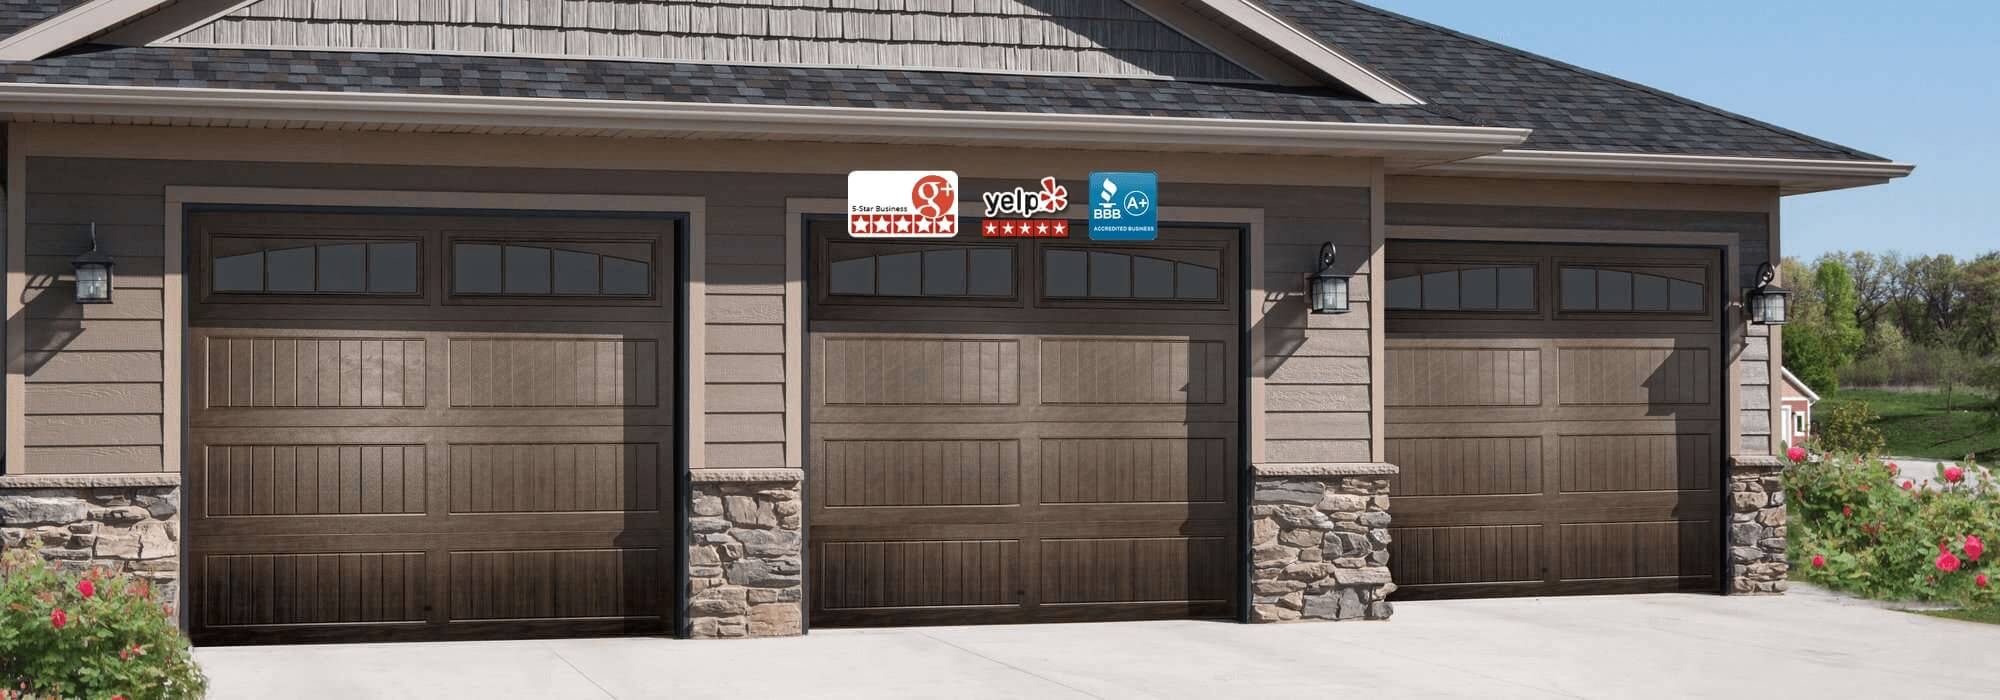 ca angeles accurate door garage svc repair image los